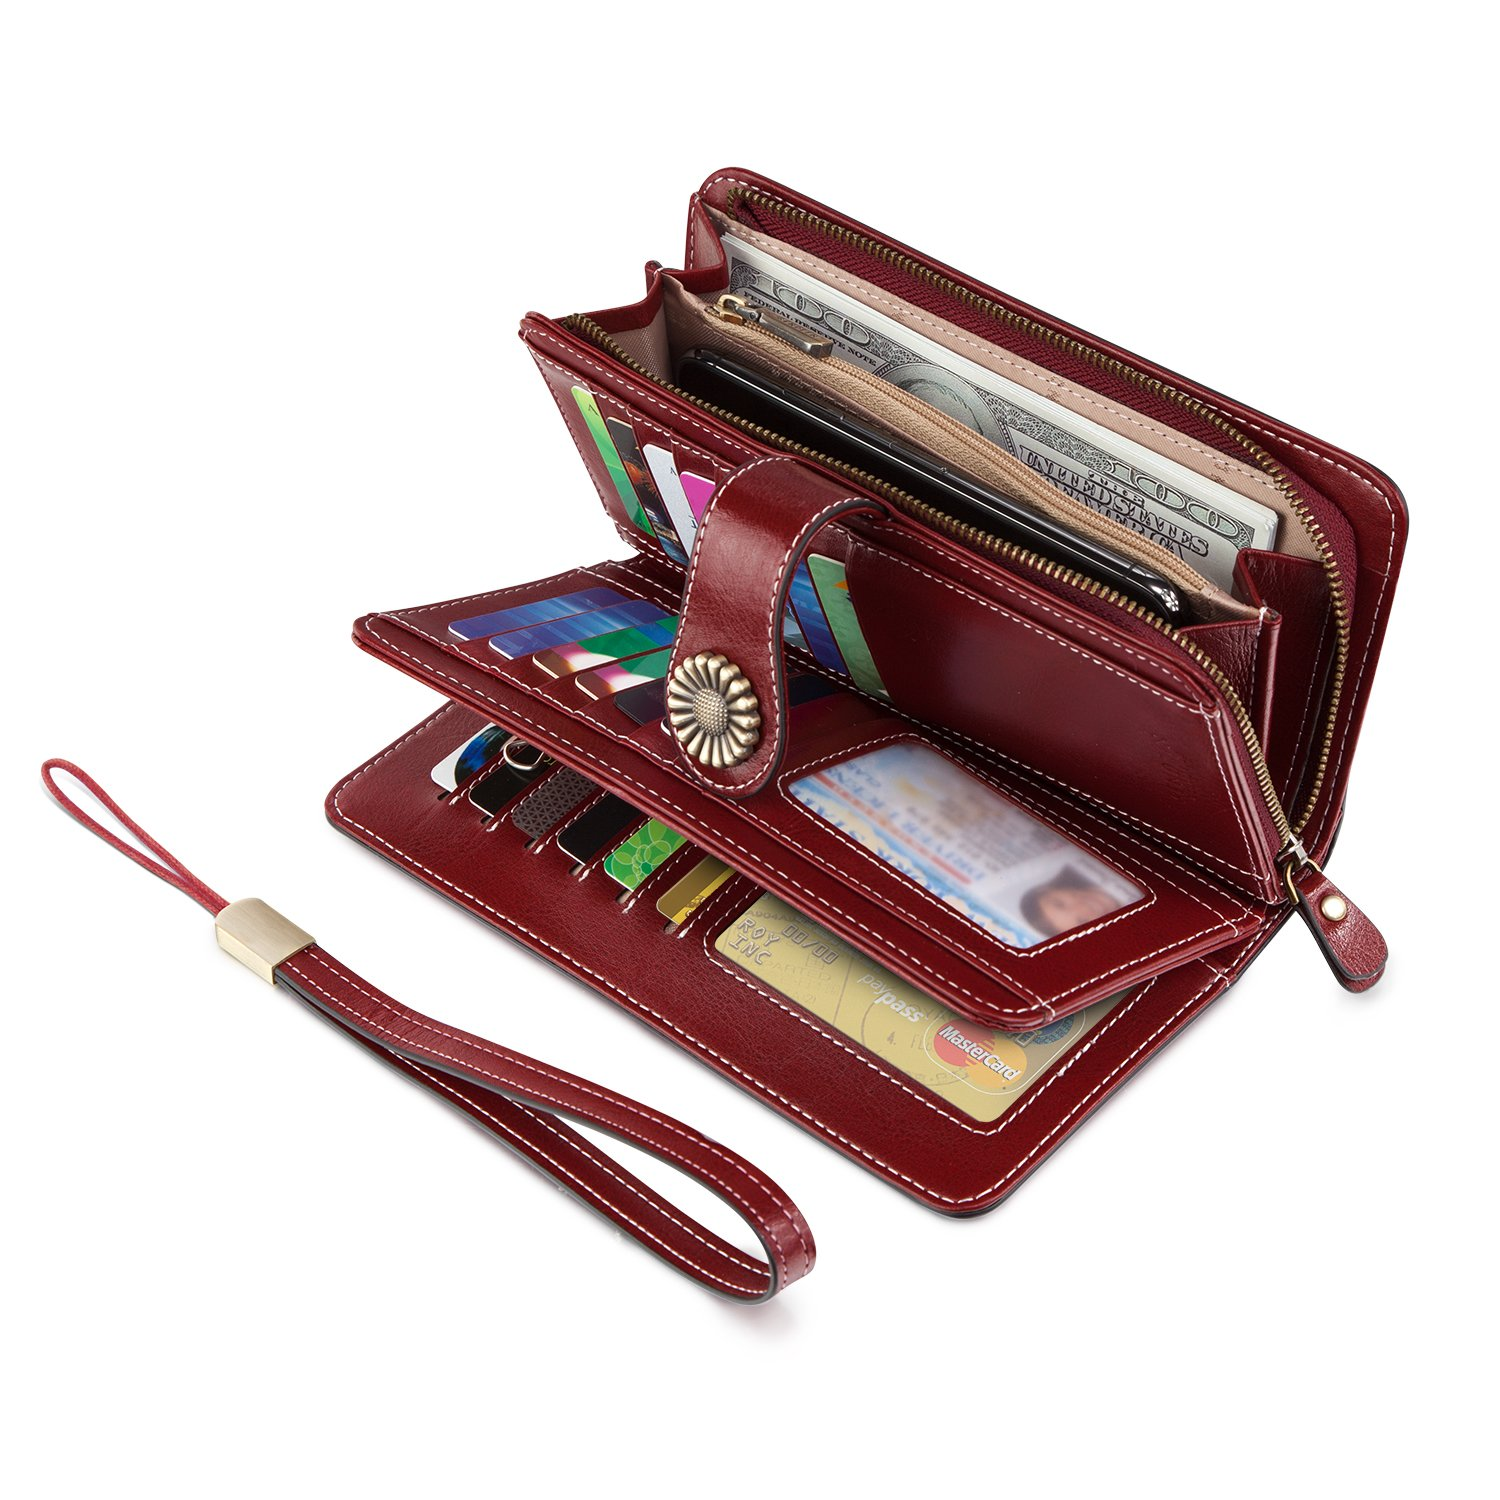 UMODE Vintage Style Genuine Leather Large Capacity Wallet Organizer for Women (Wine Color)